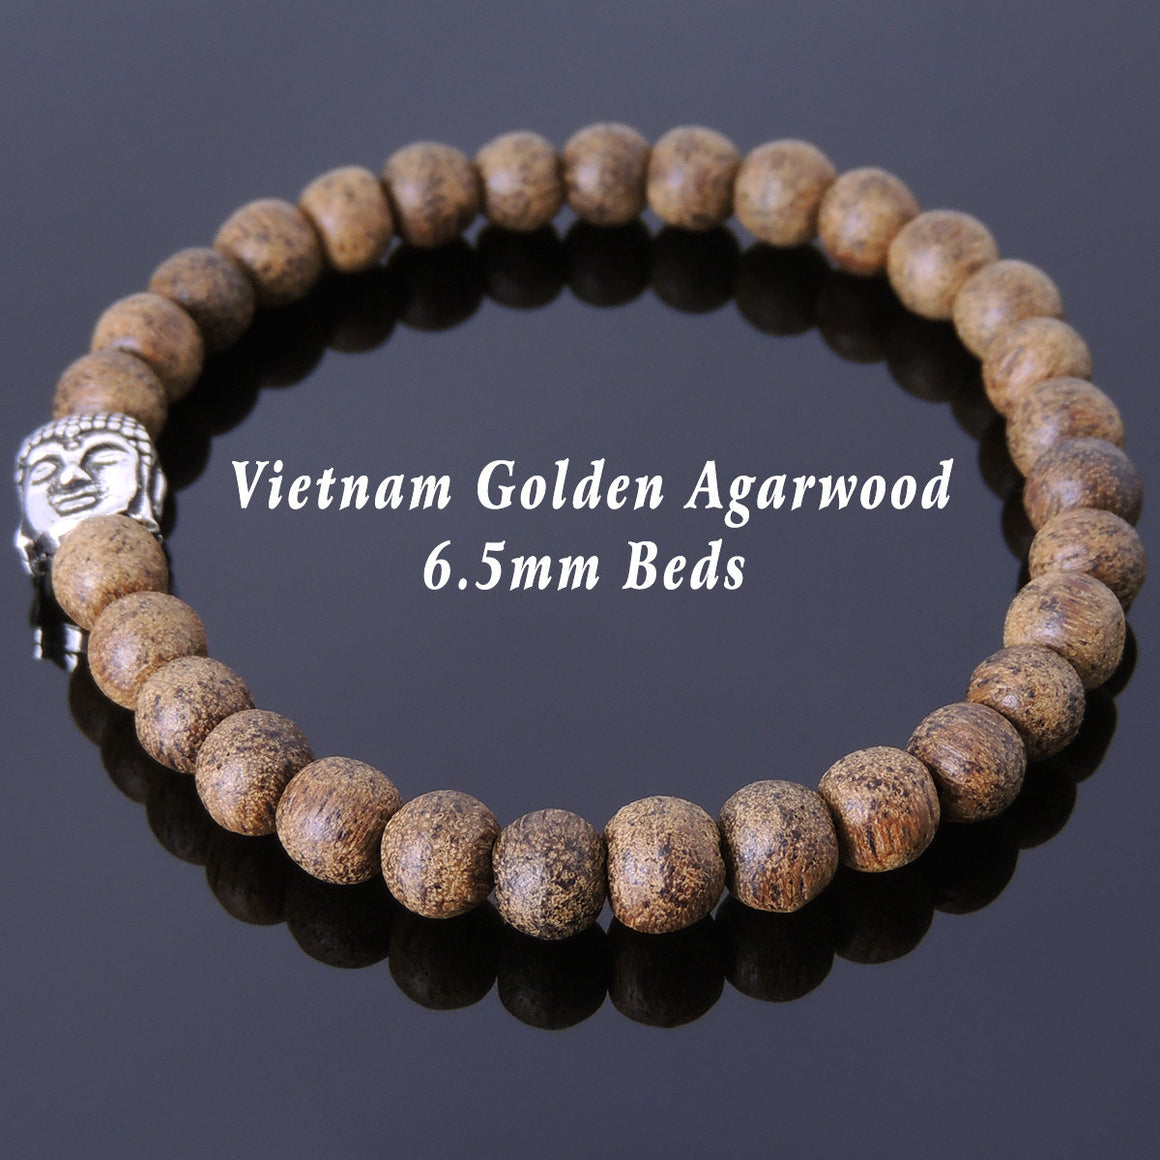 6.5mm Golden Agarwood Meditation Bracelet with S925 Sterling Silver Guanyin Buddha Bead - Handmade by Gem & Silver BR683